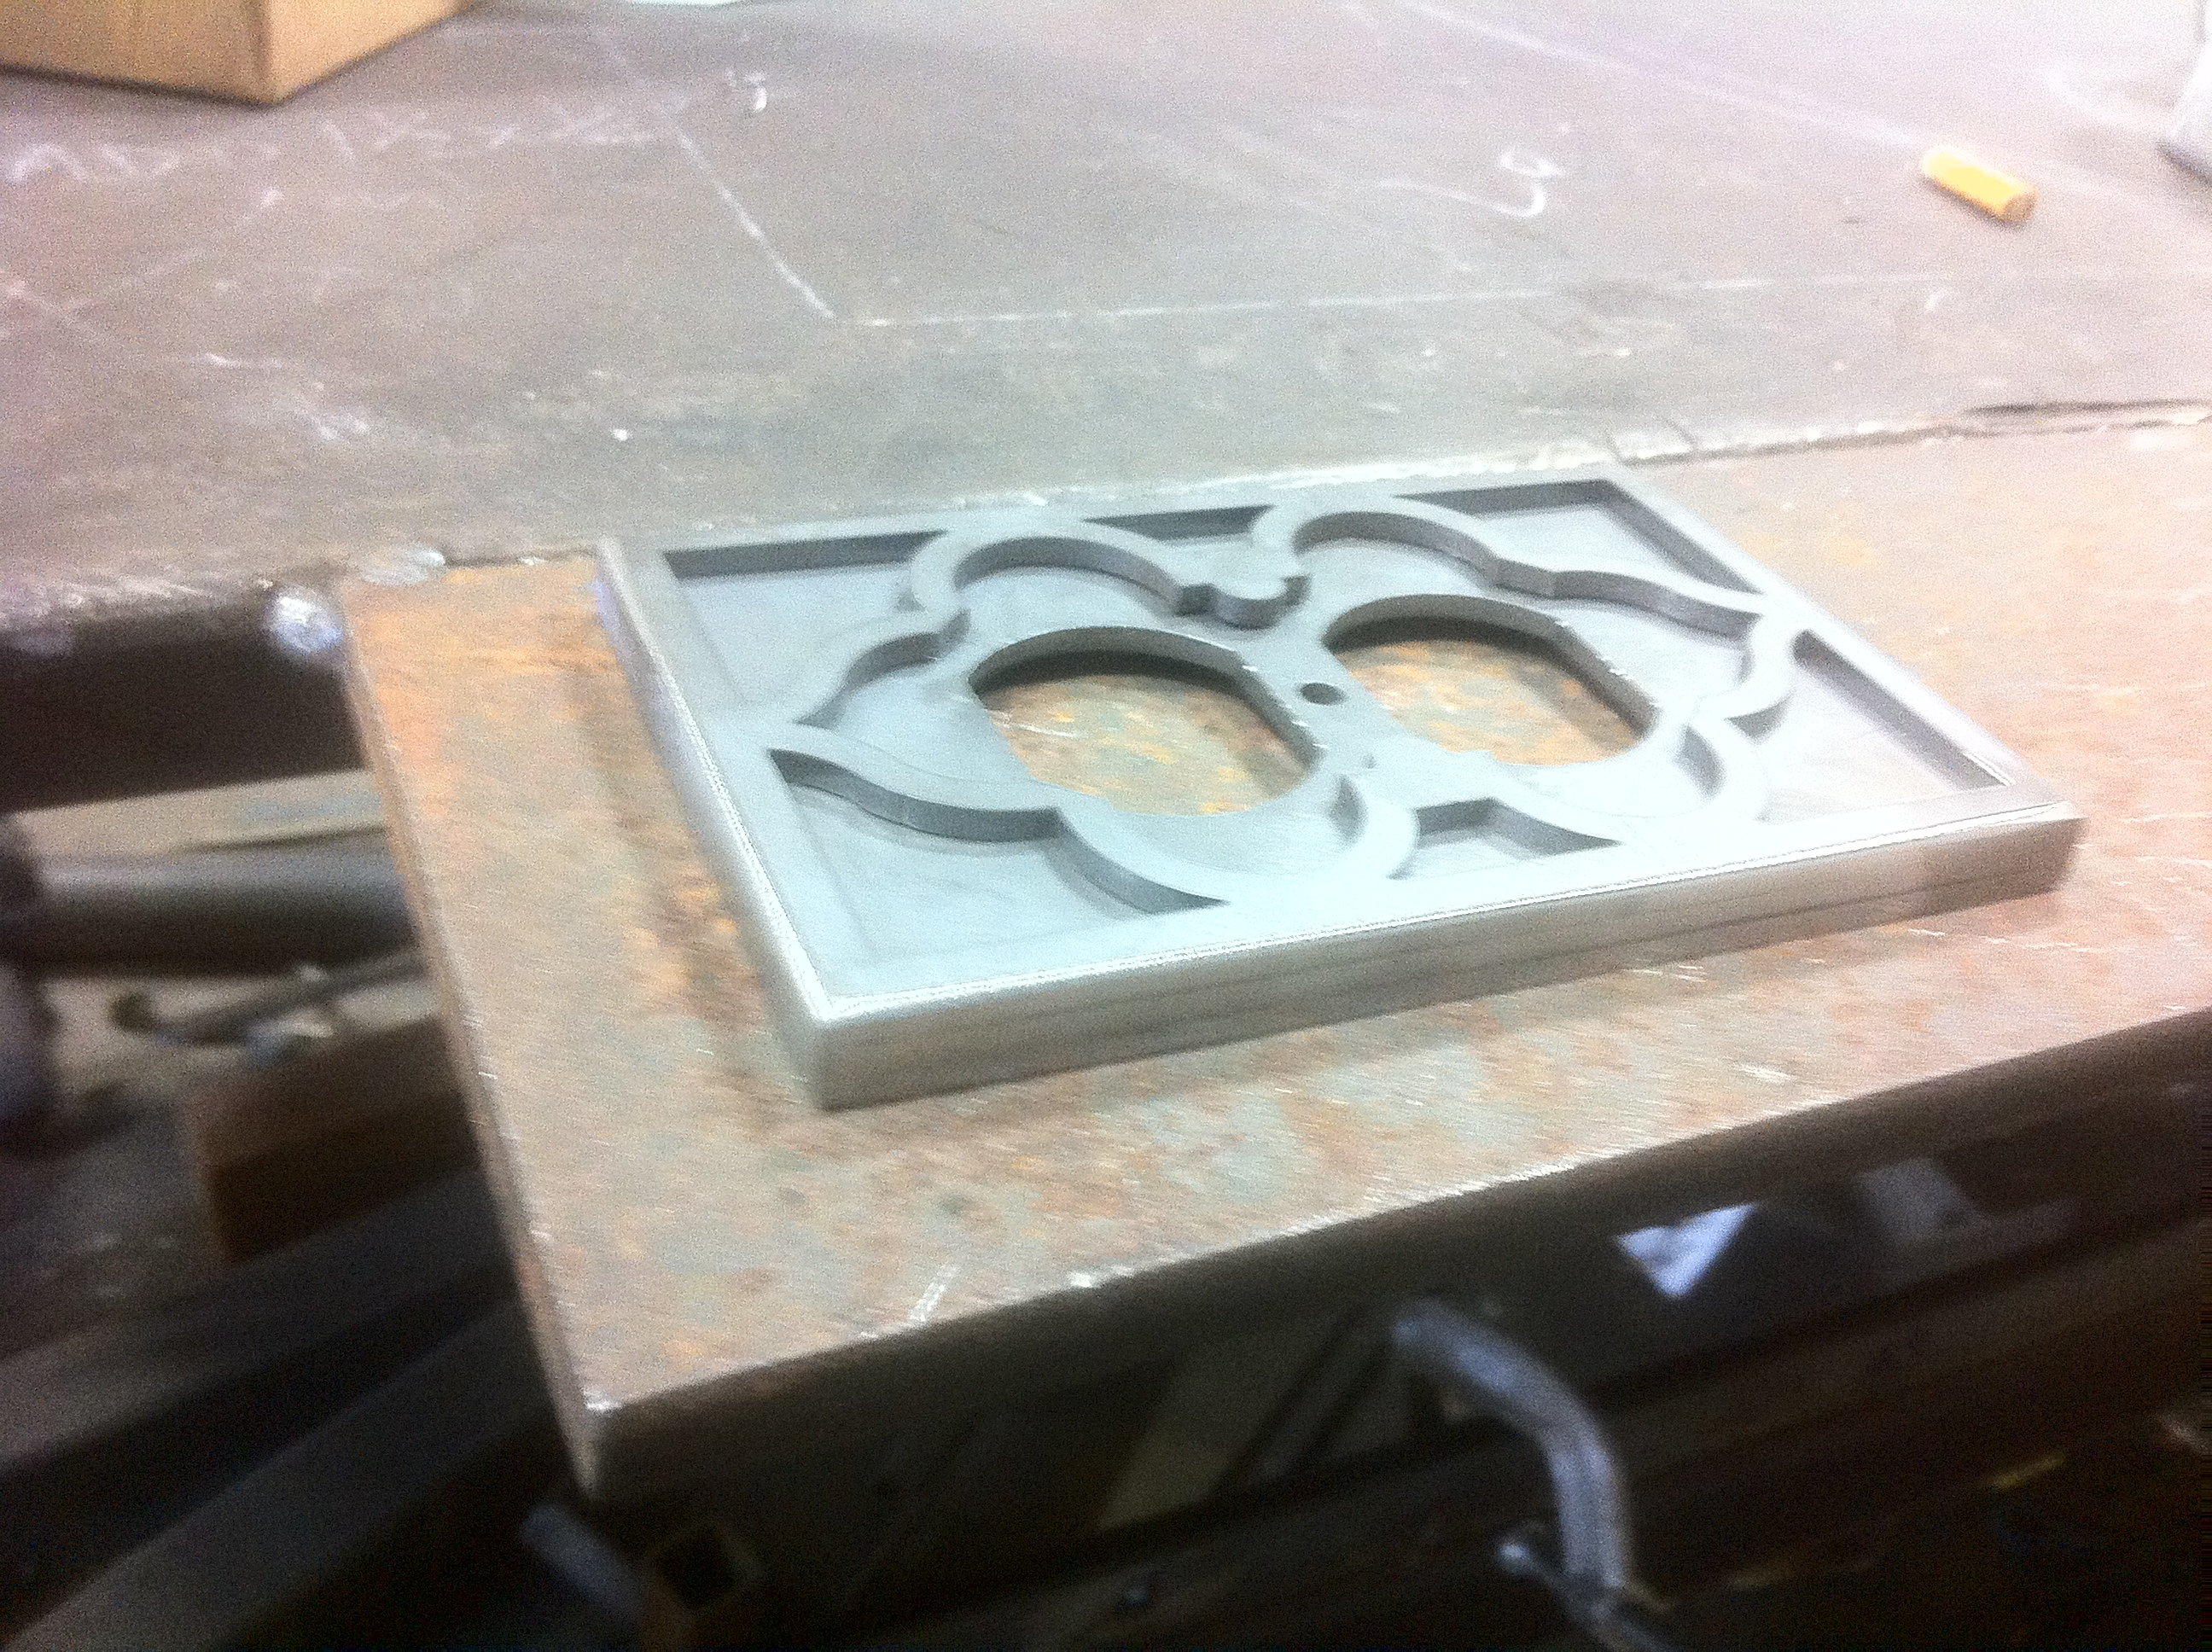 Plasma Cutter – Light switch cover